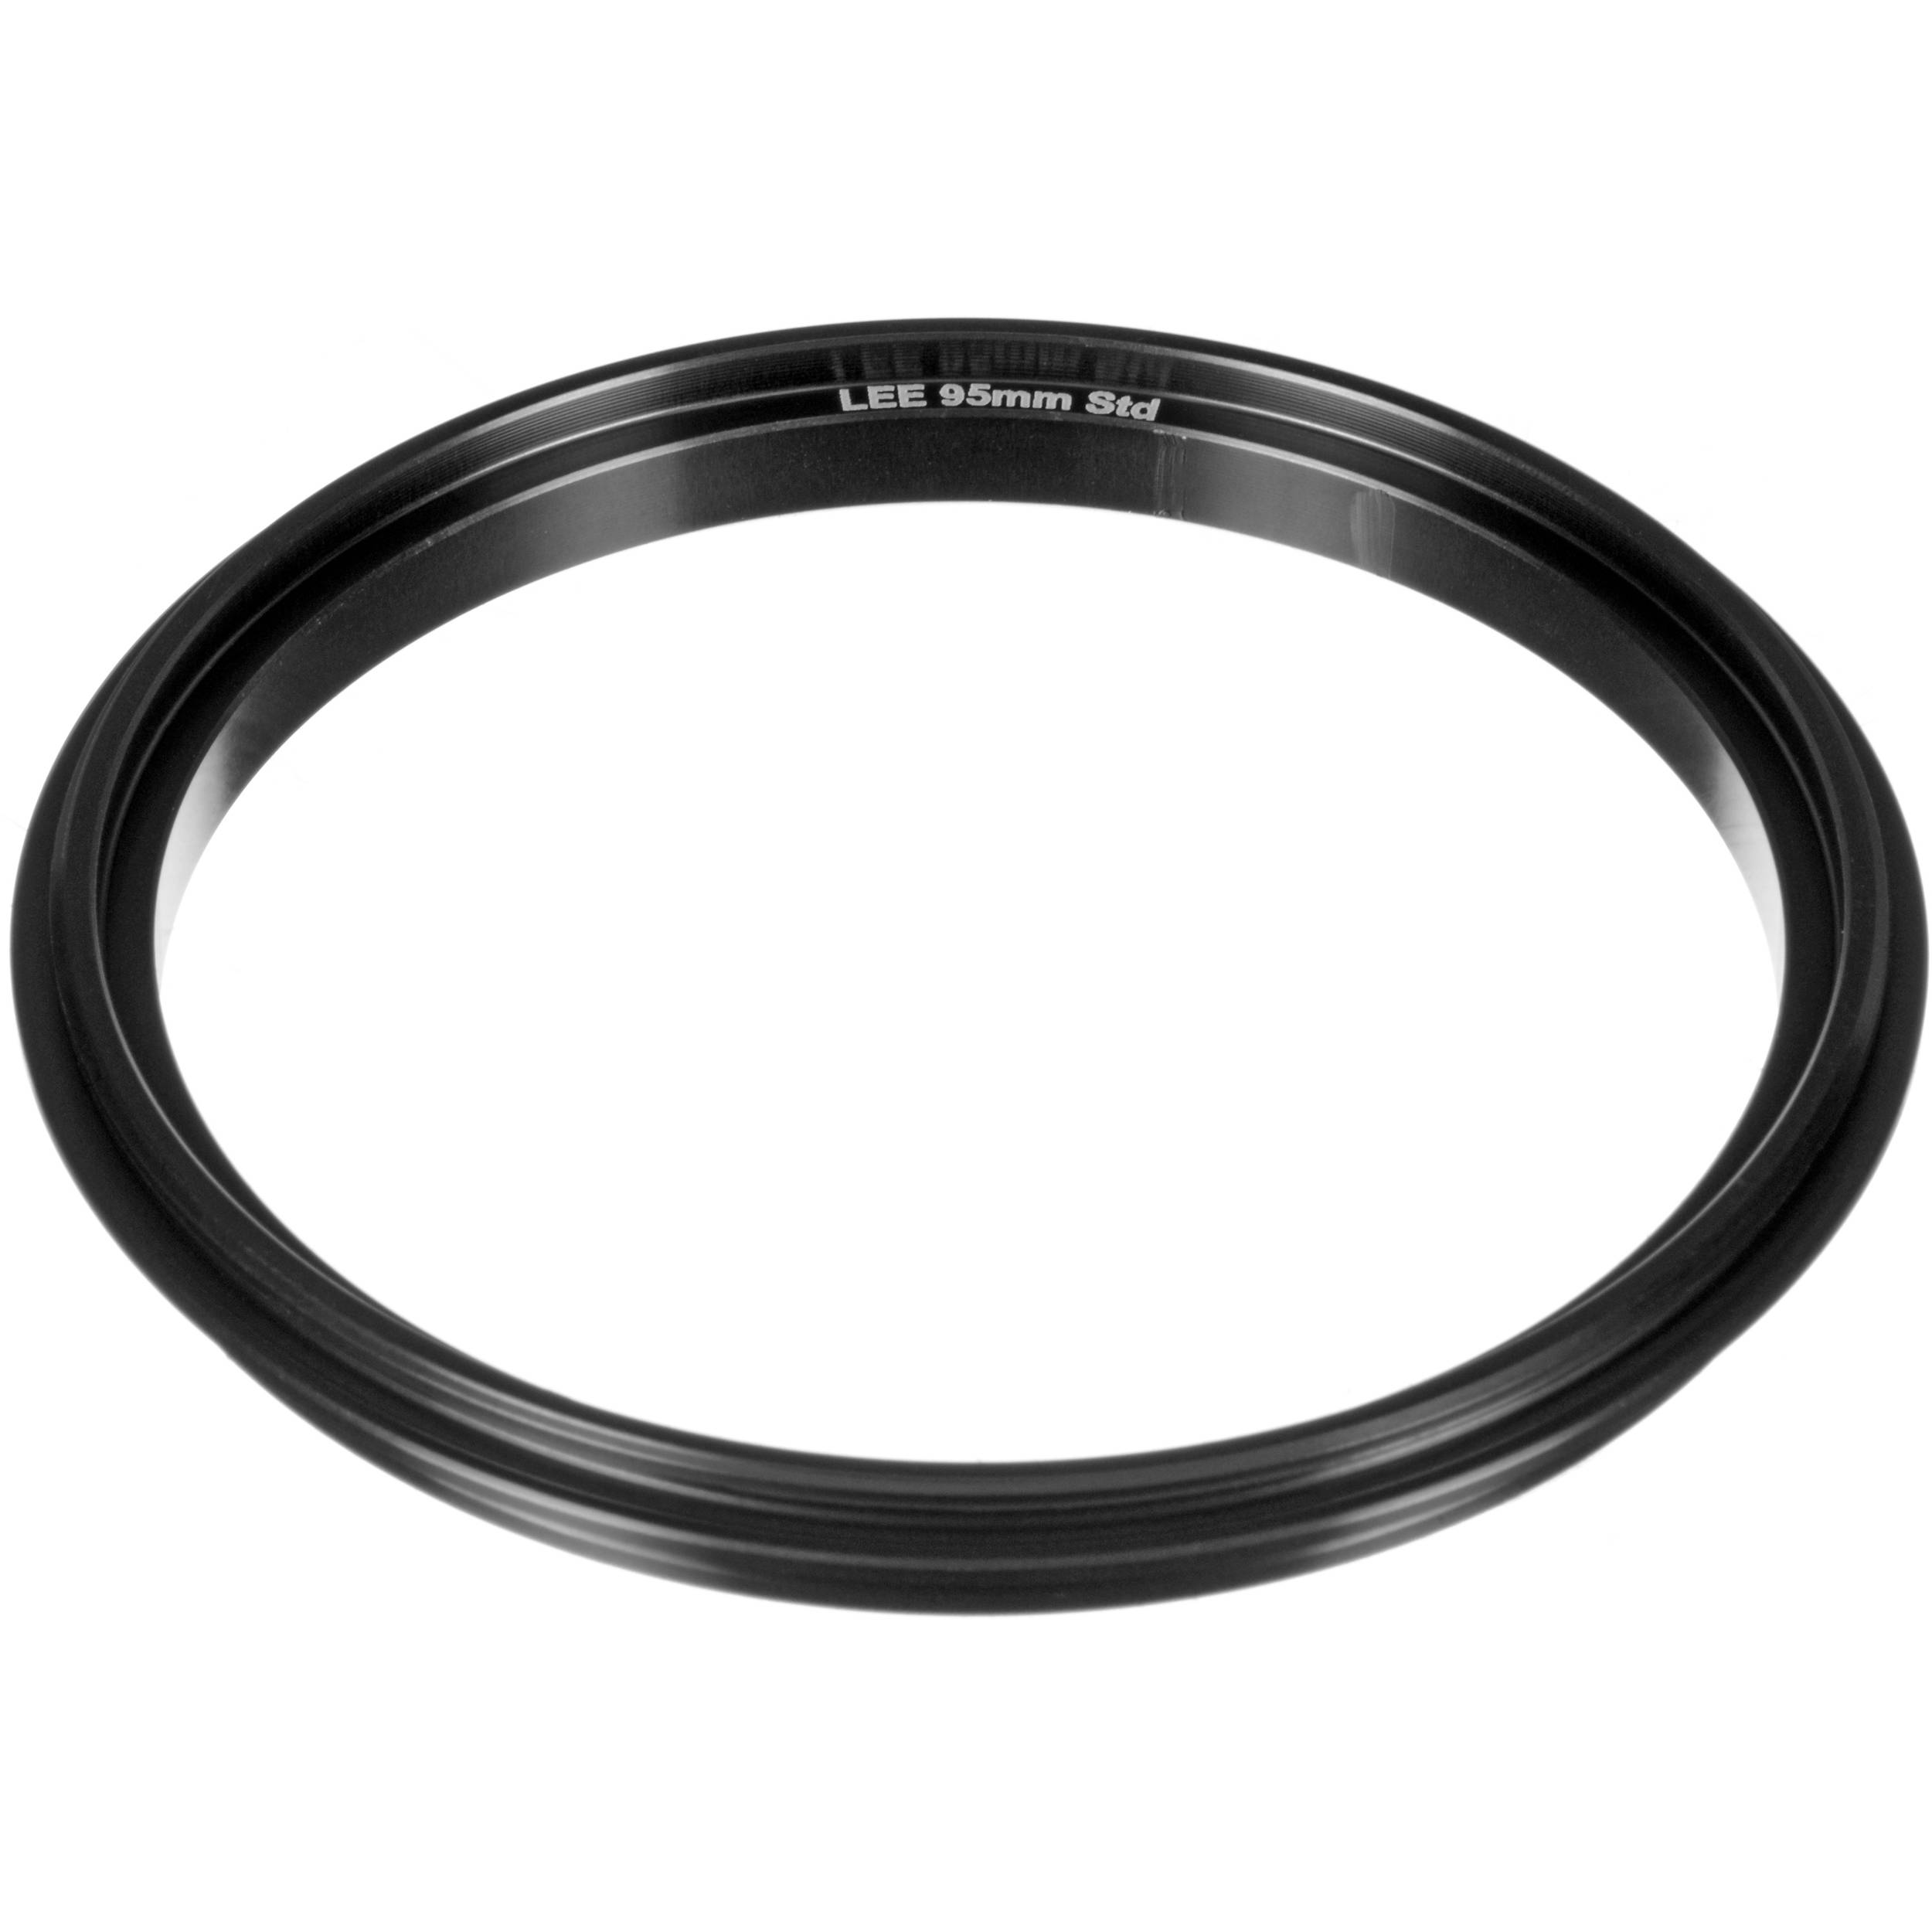 Lee Mm Wide Adapter Ring